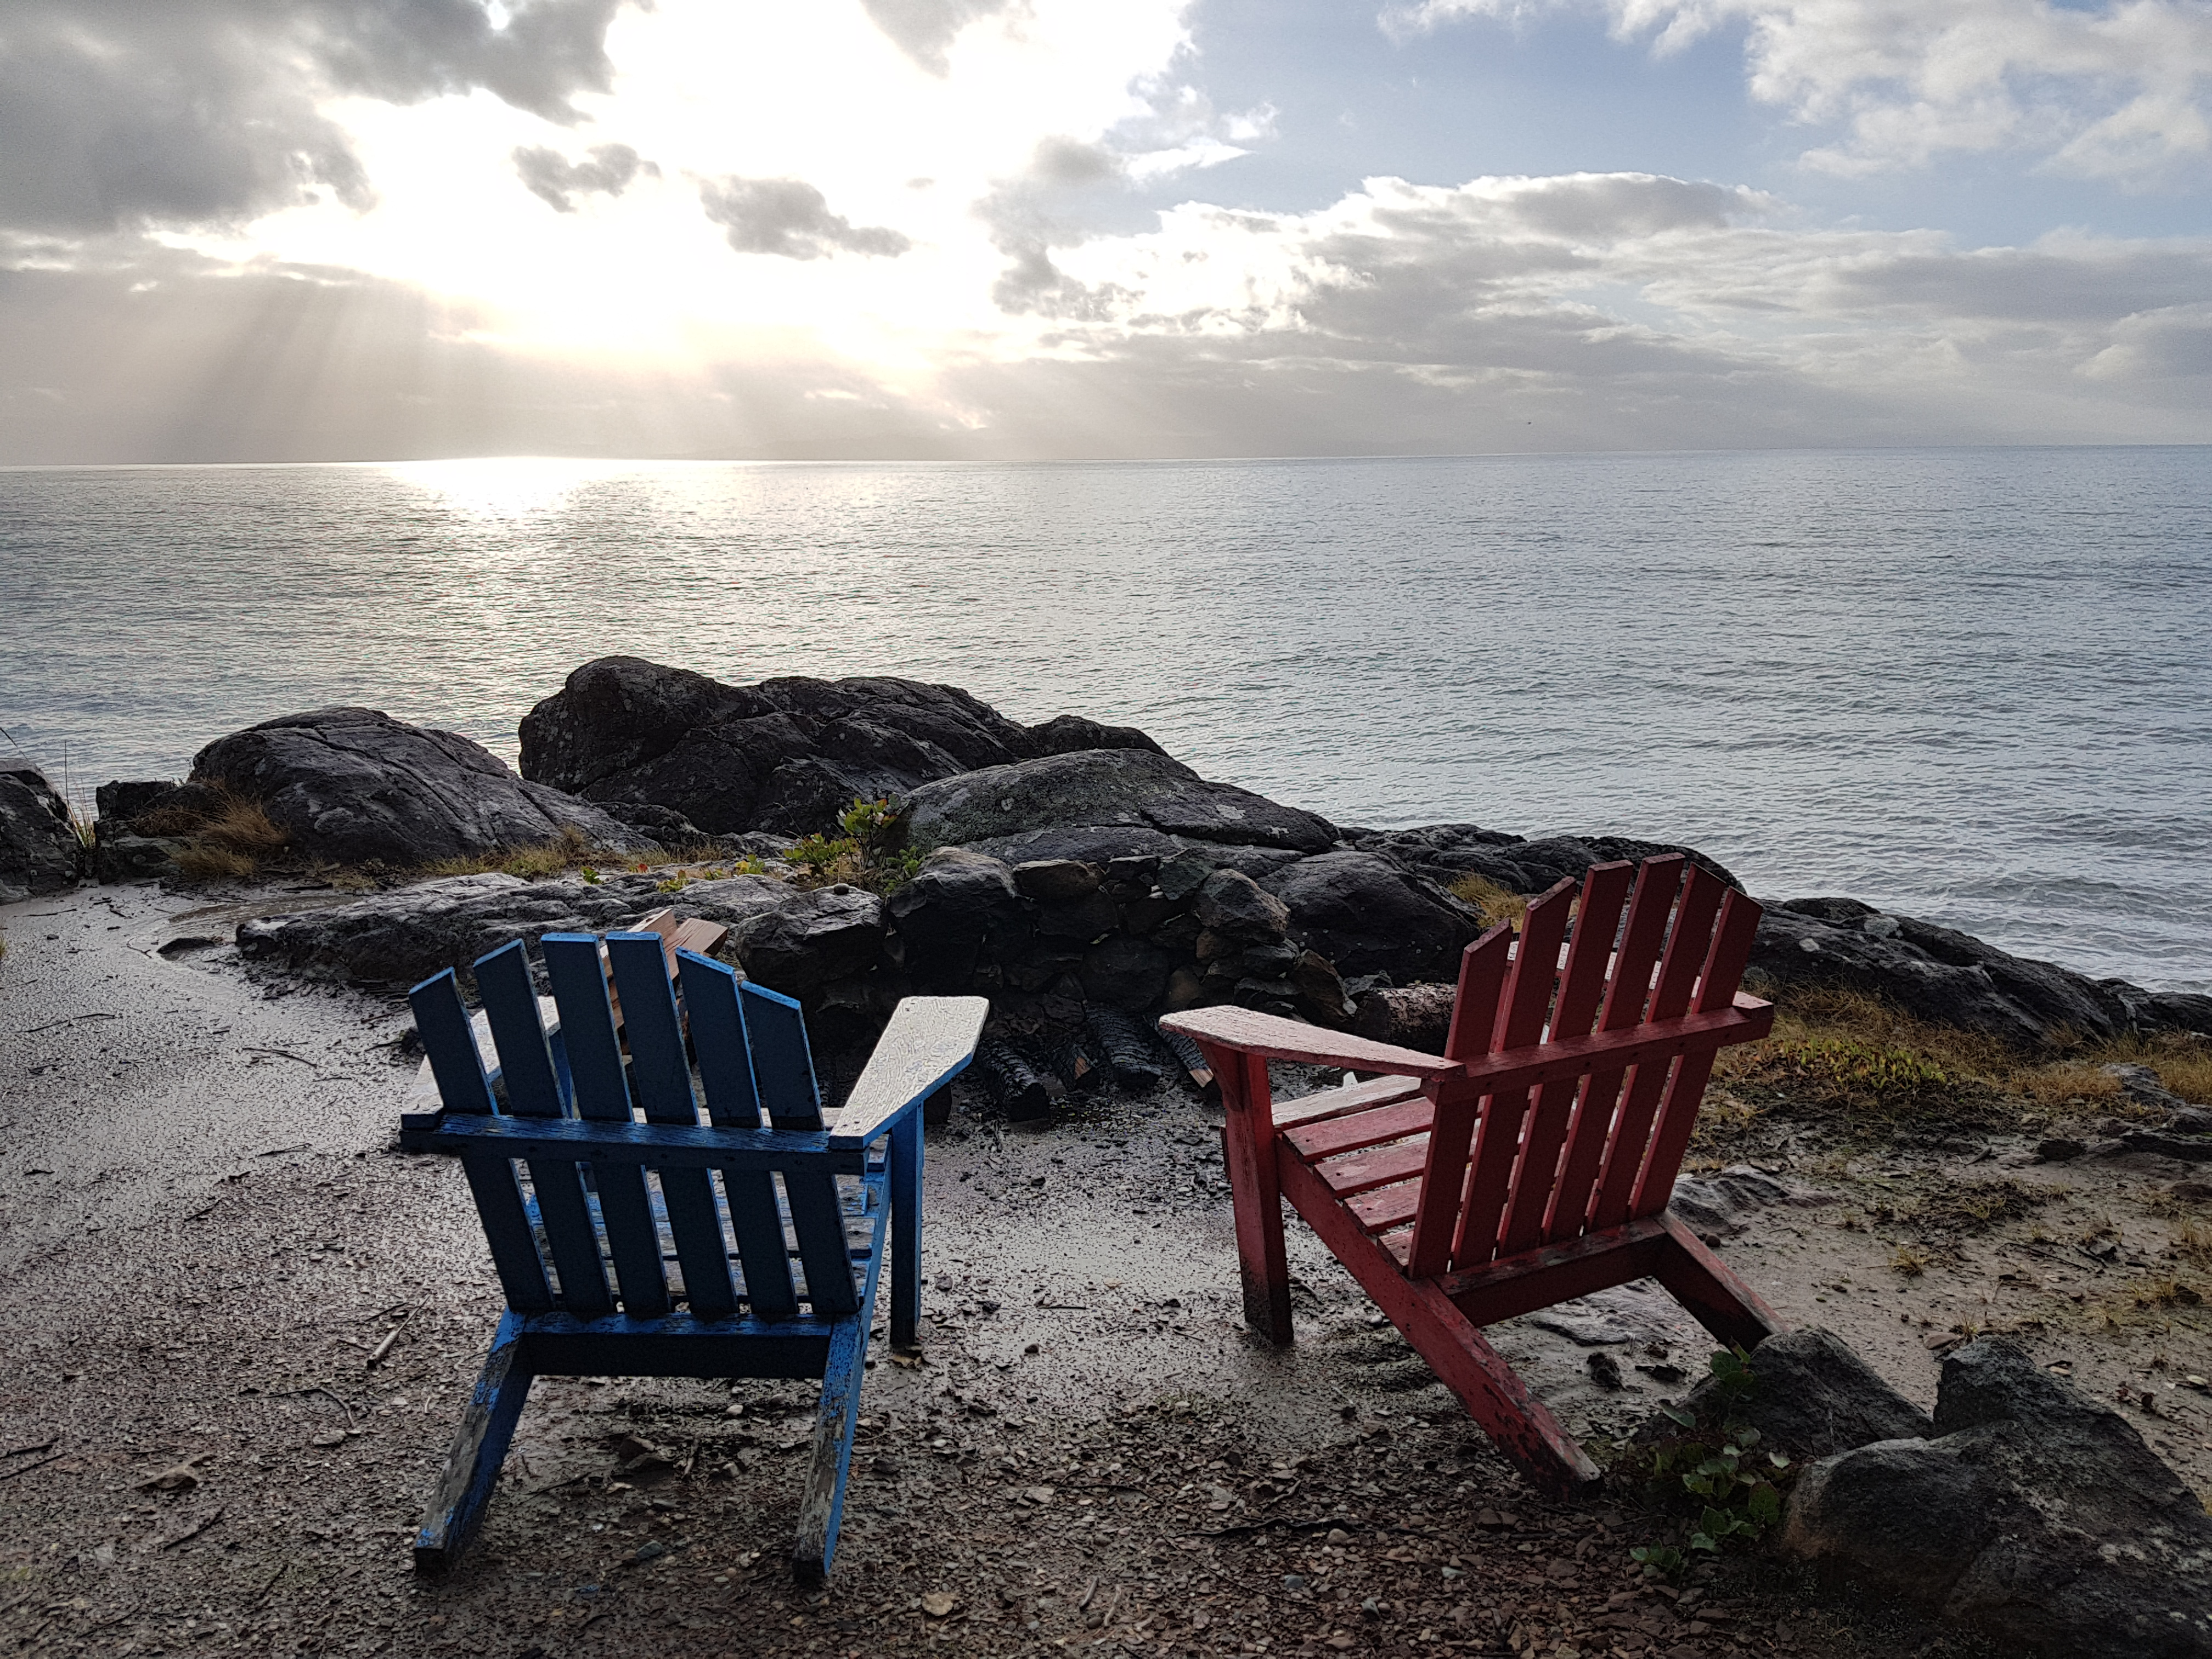 Chairs by the ocean